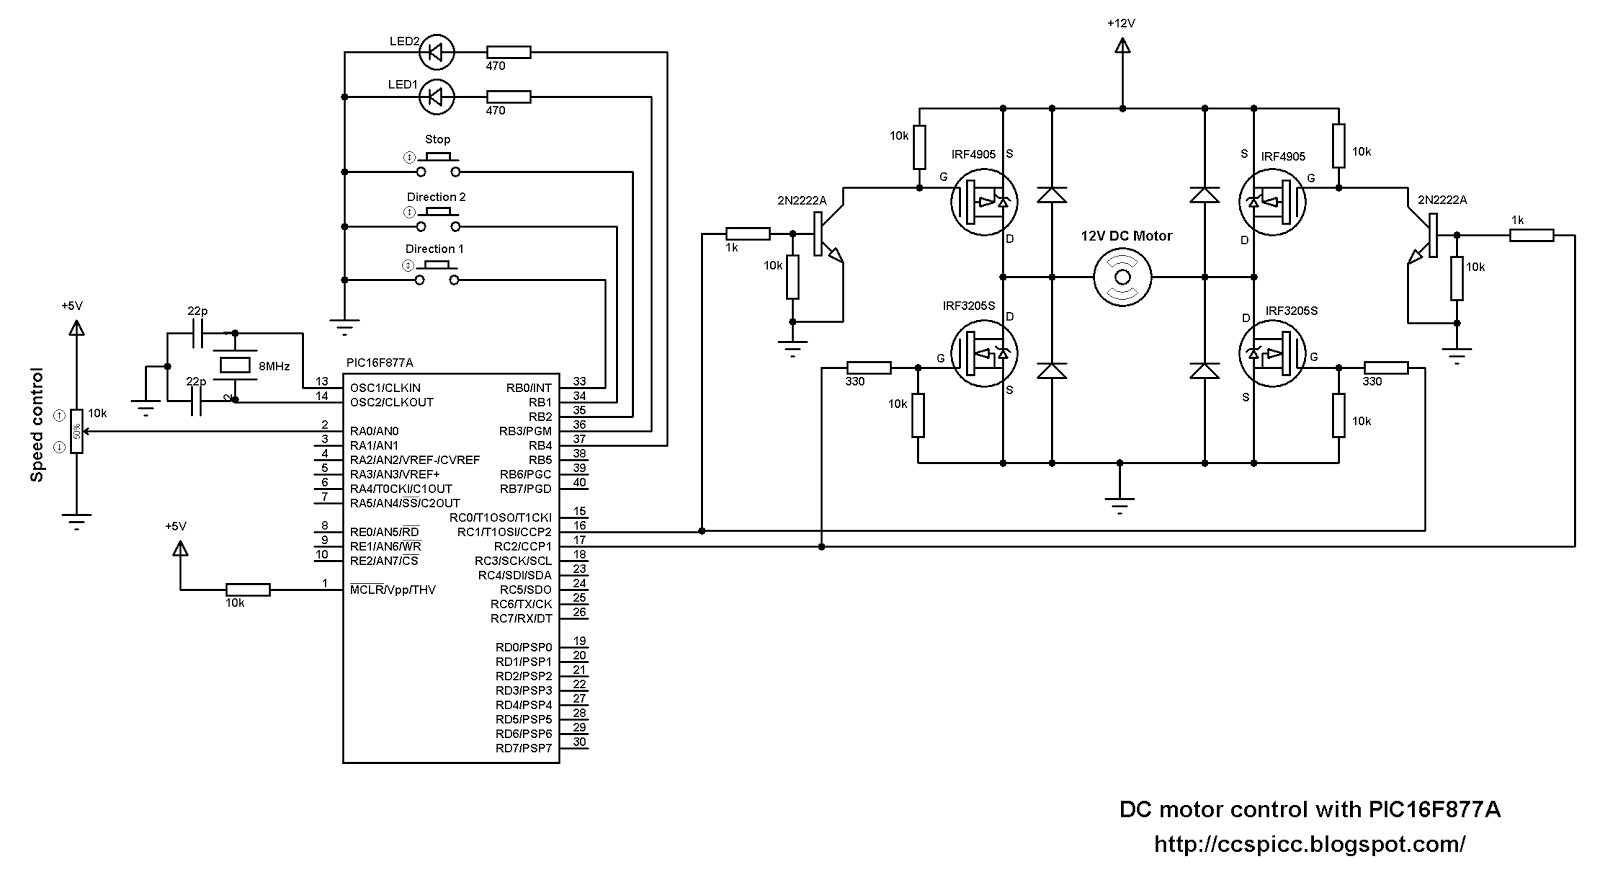 dc motor speed and direction control with pic16f877a and h bridge brushless dc motor control circuit schematic using microchip pic16f877 [ 1600 x 880 Pixel ]